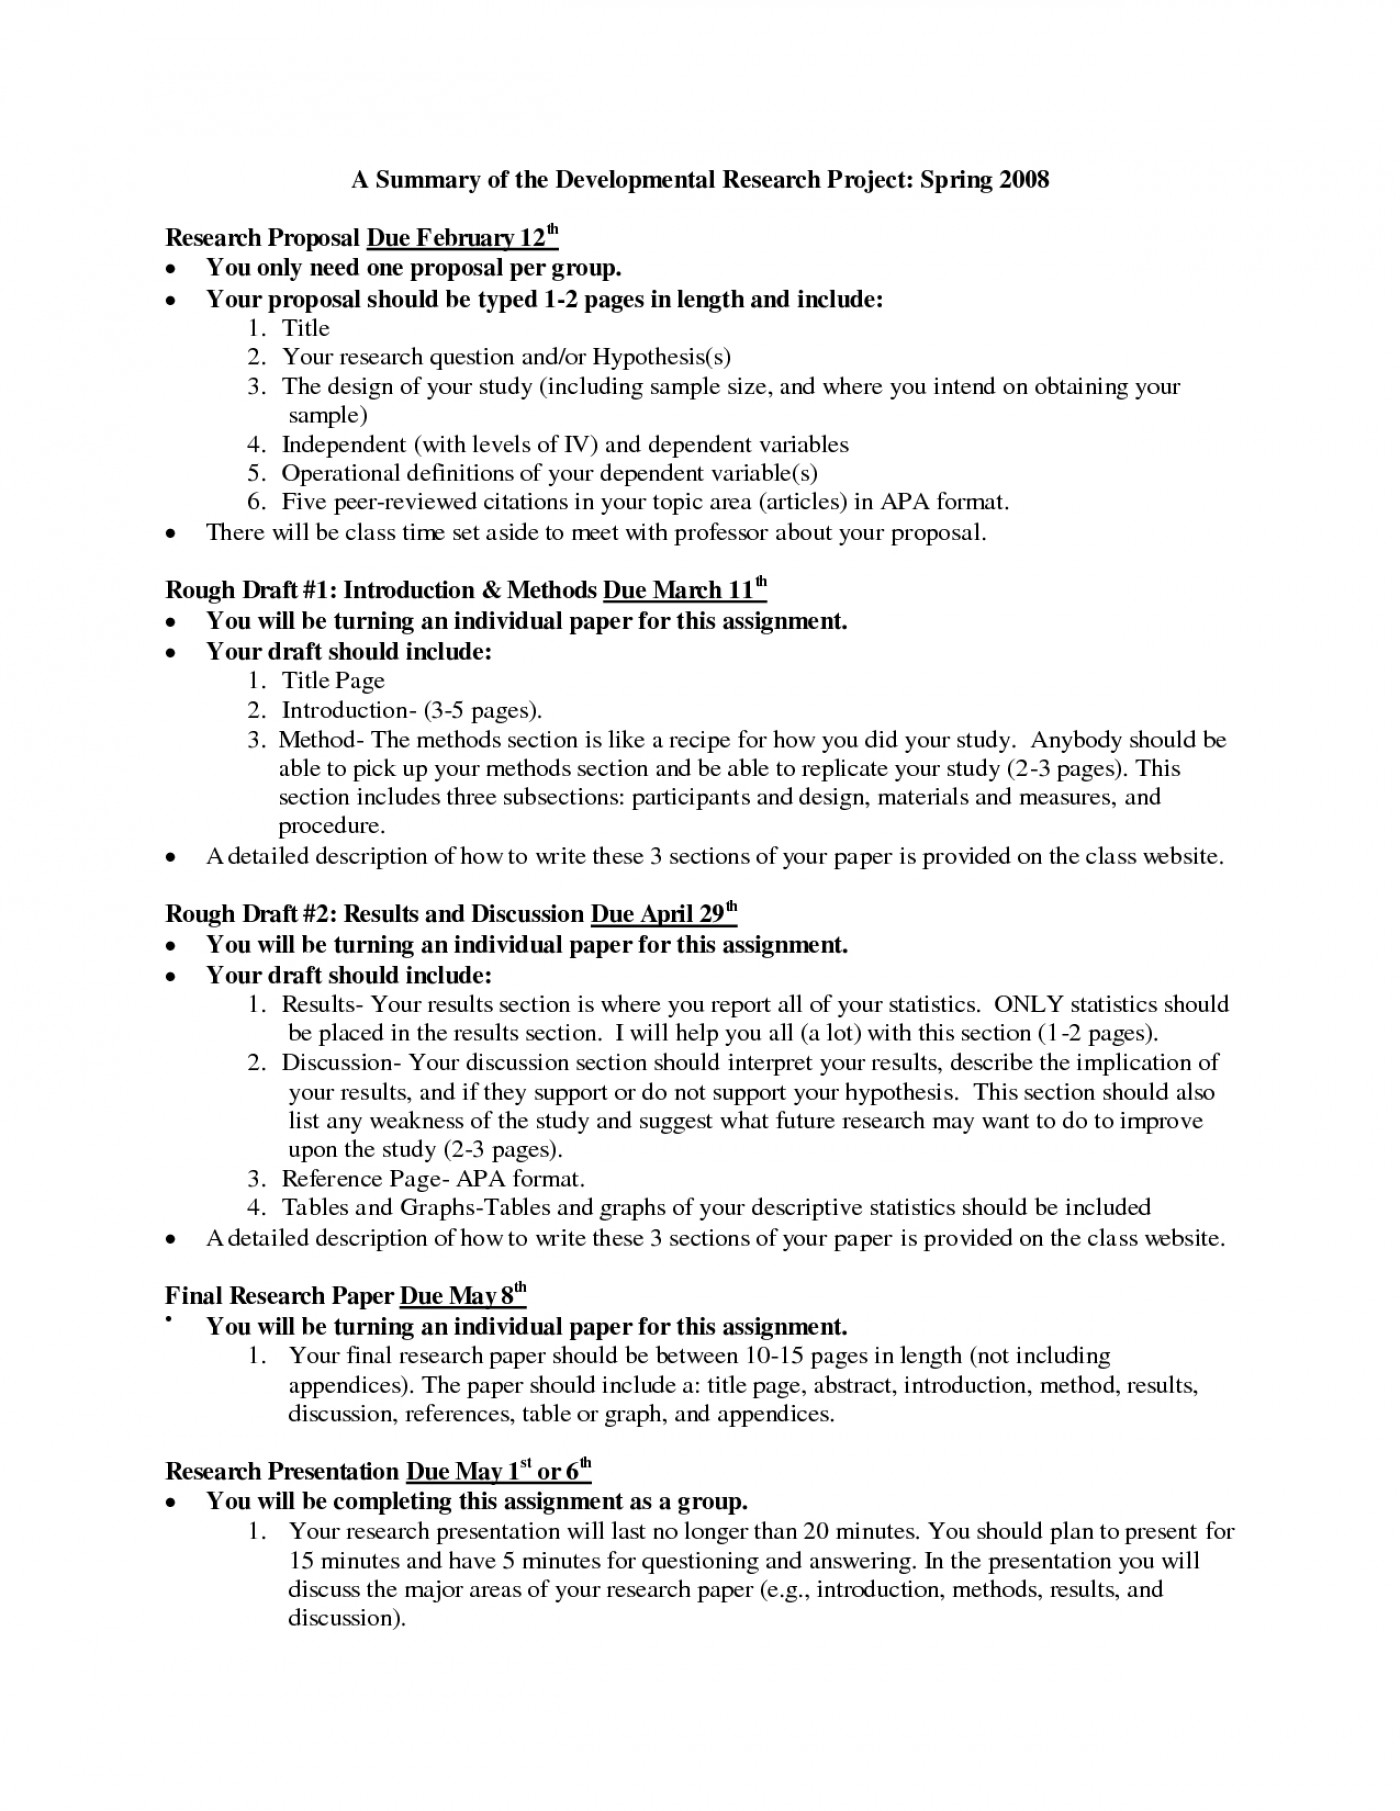 012 Good Research Paper Topic Psychology Undergraduate Resume Unique Sample Singular Topics About Sports For Sociology High School Students In The Philippines 1400